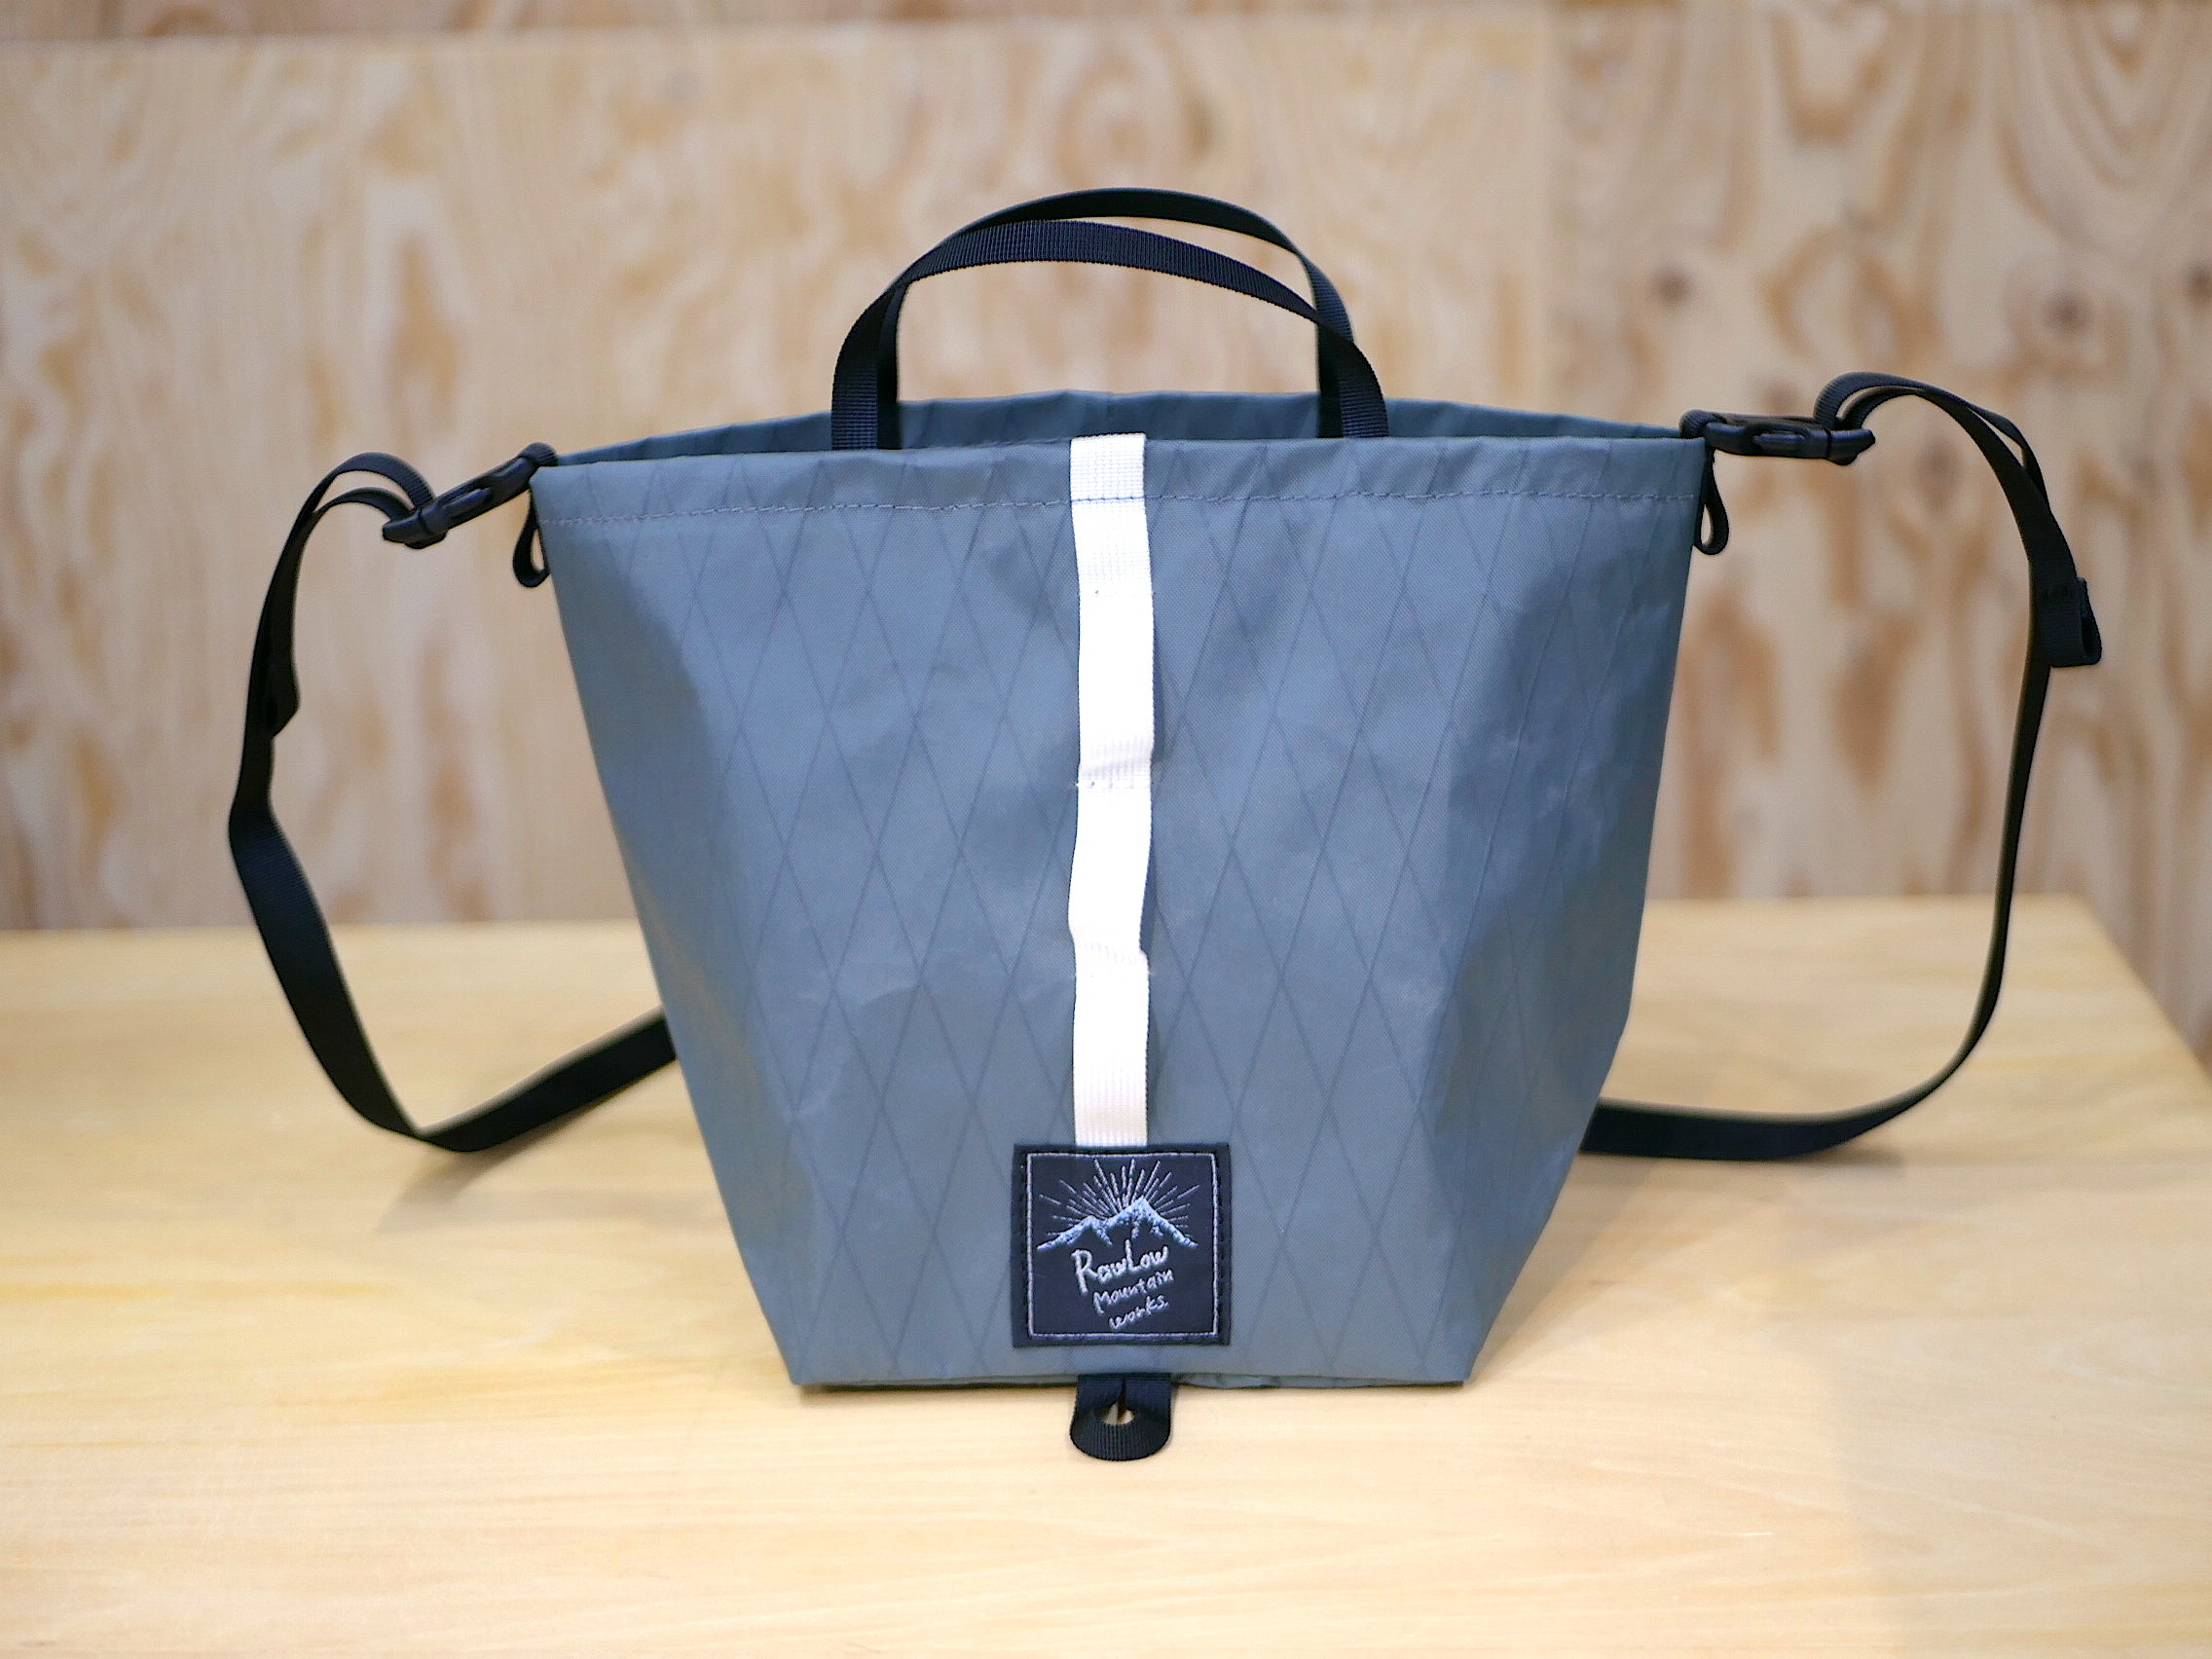 RAWLOW MOUNTAIN WORKS / TABITIBI TOTE(X-PAC EDITION)